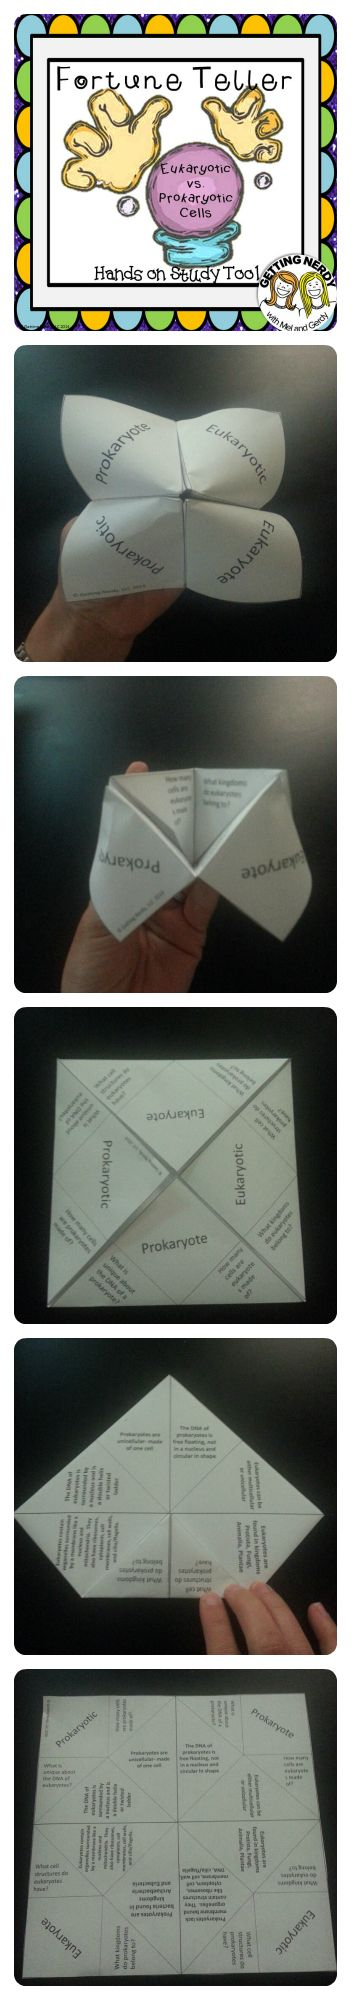 FREE Fortune Teller / Cootie Catcher for your Secondary science classes - comparing prokaryotes and eukaryotes. #gettingnerdy